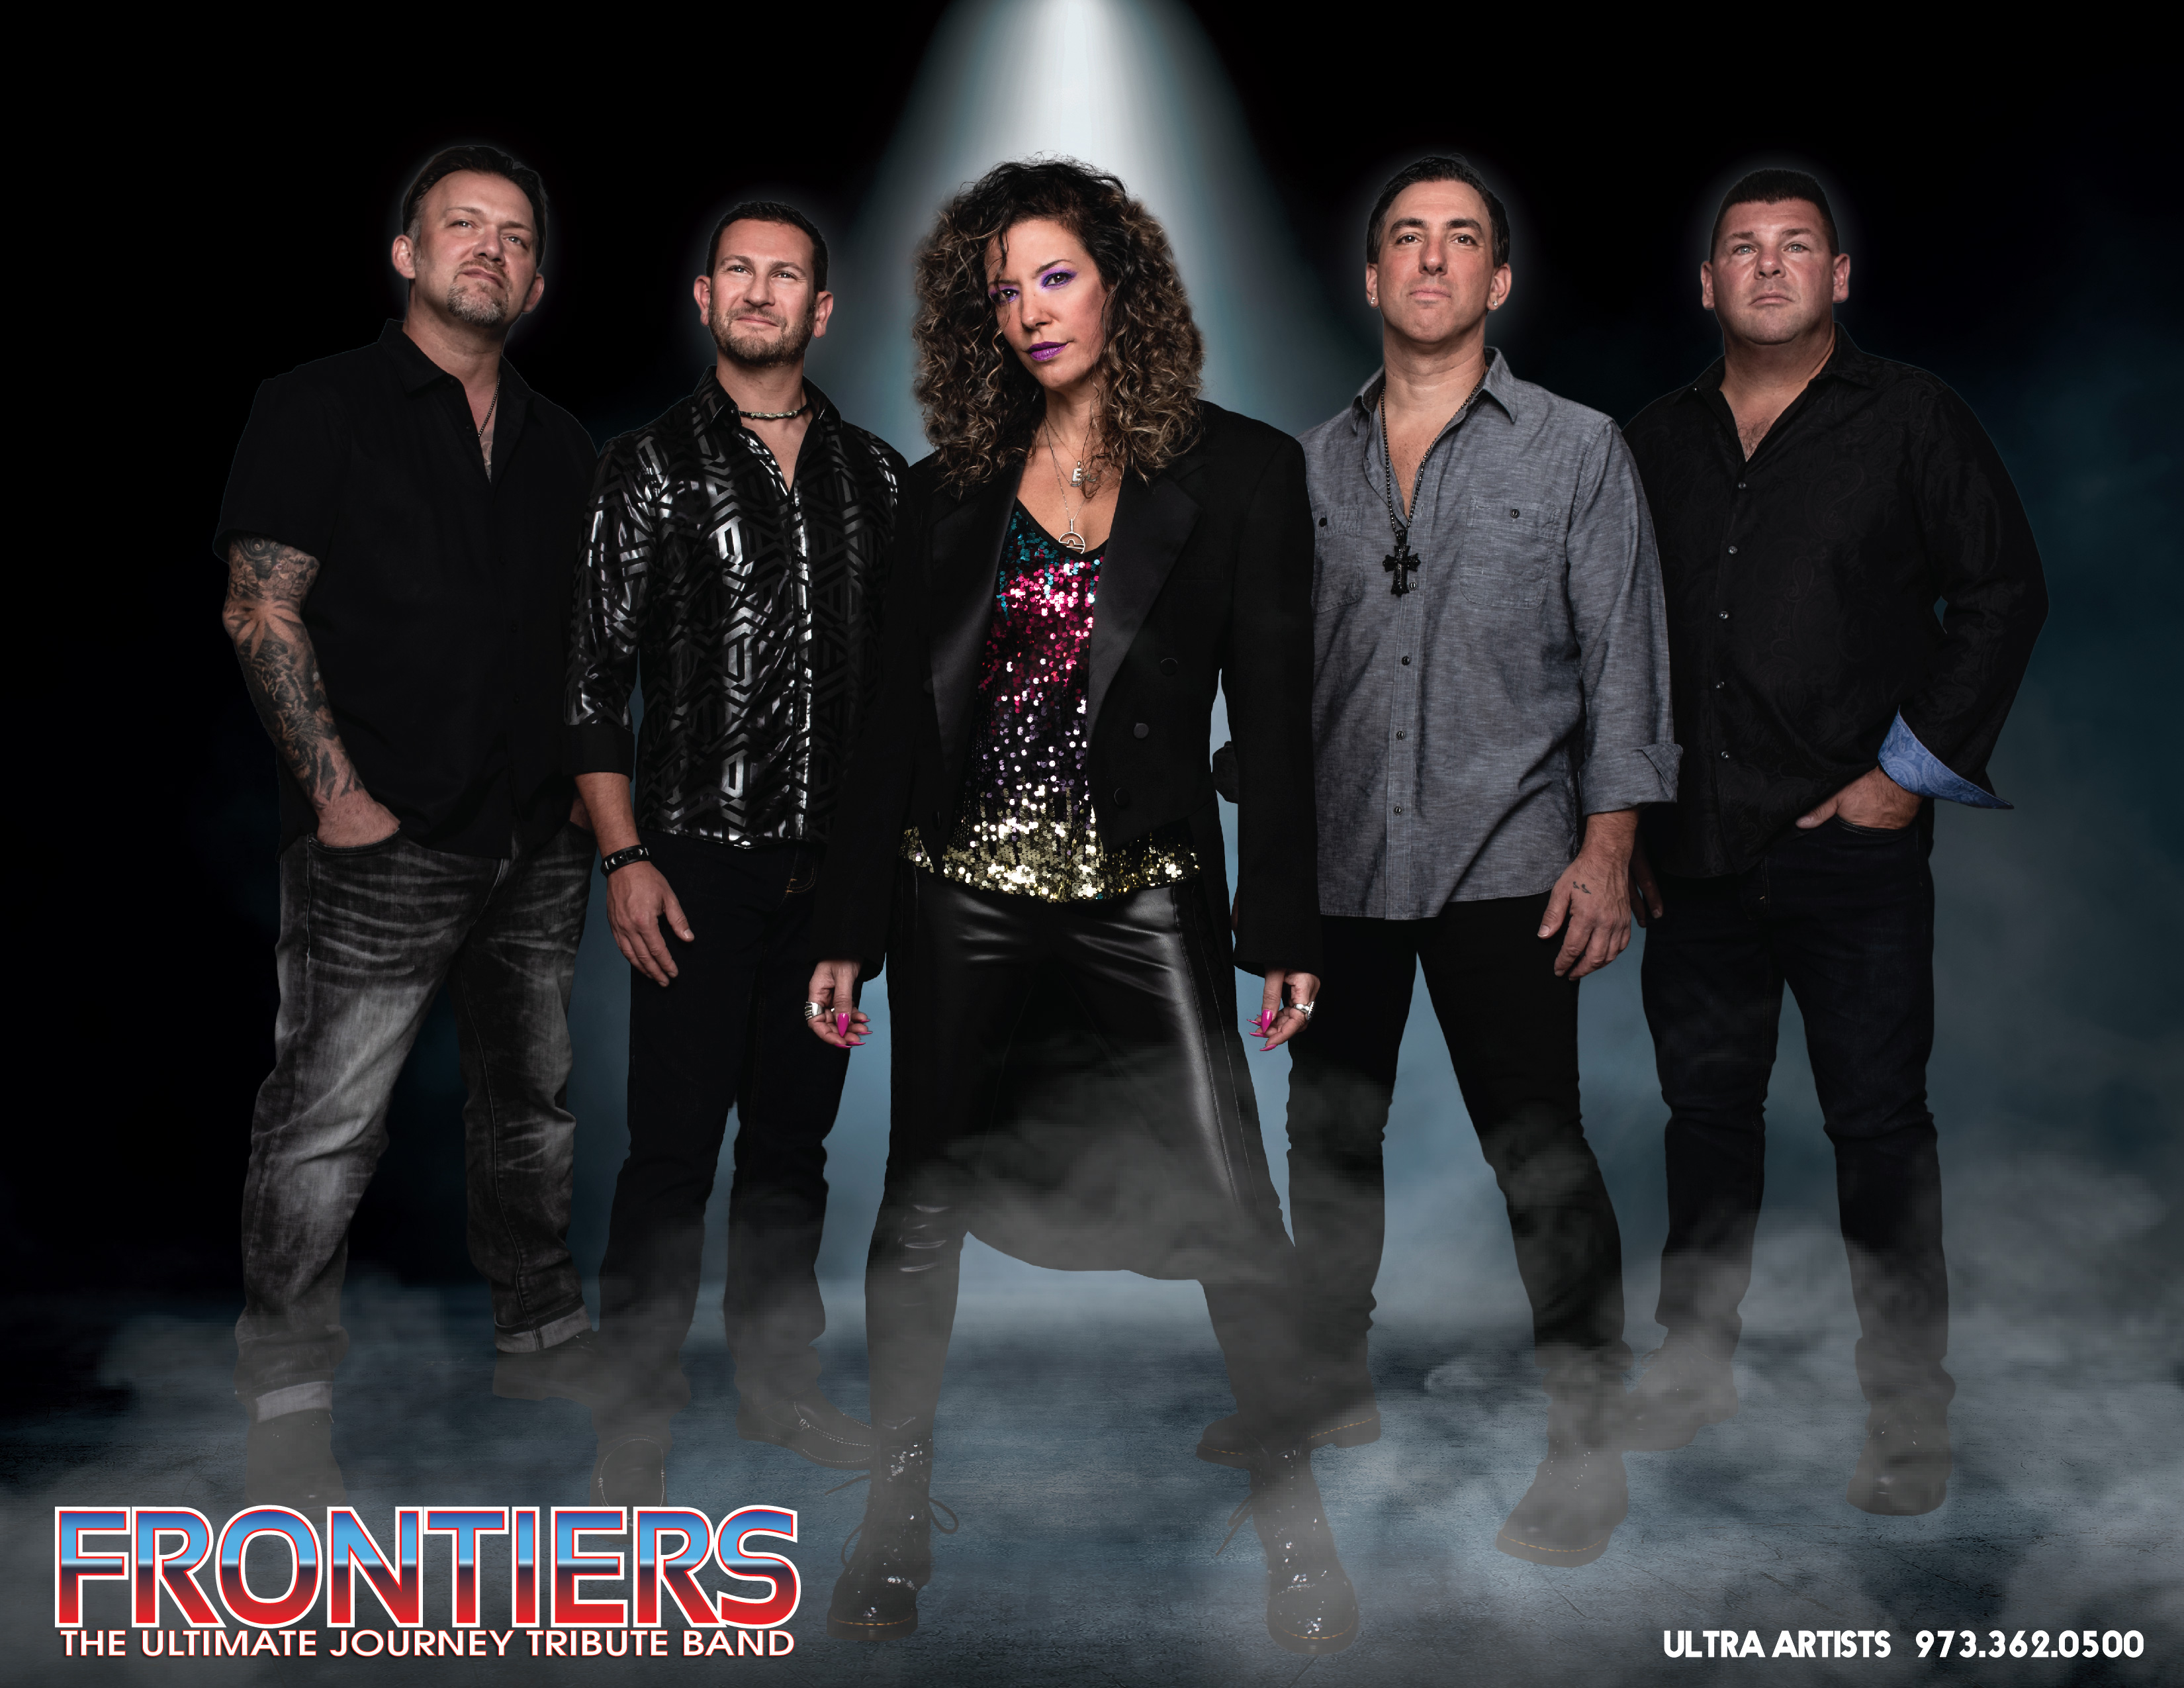 Frontiers band